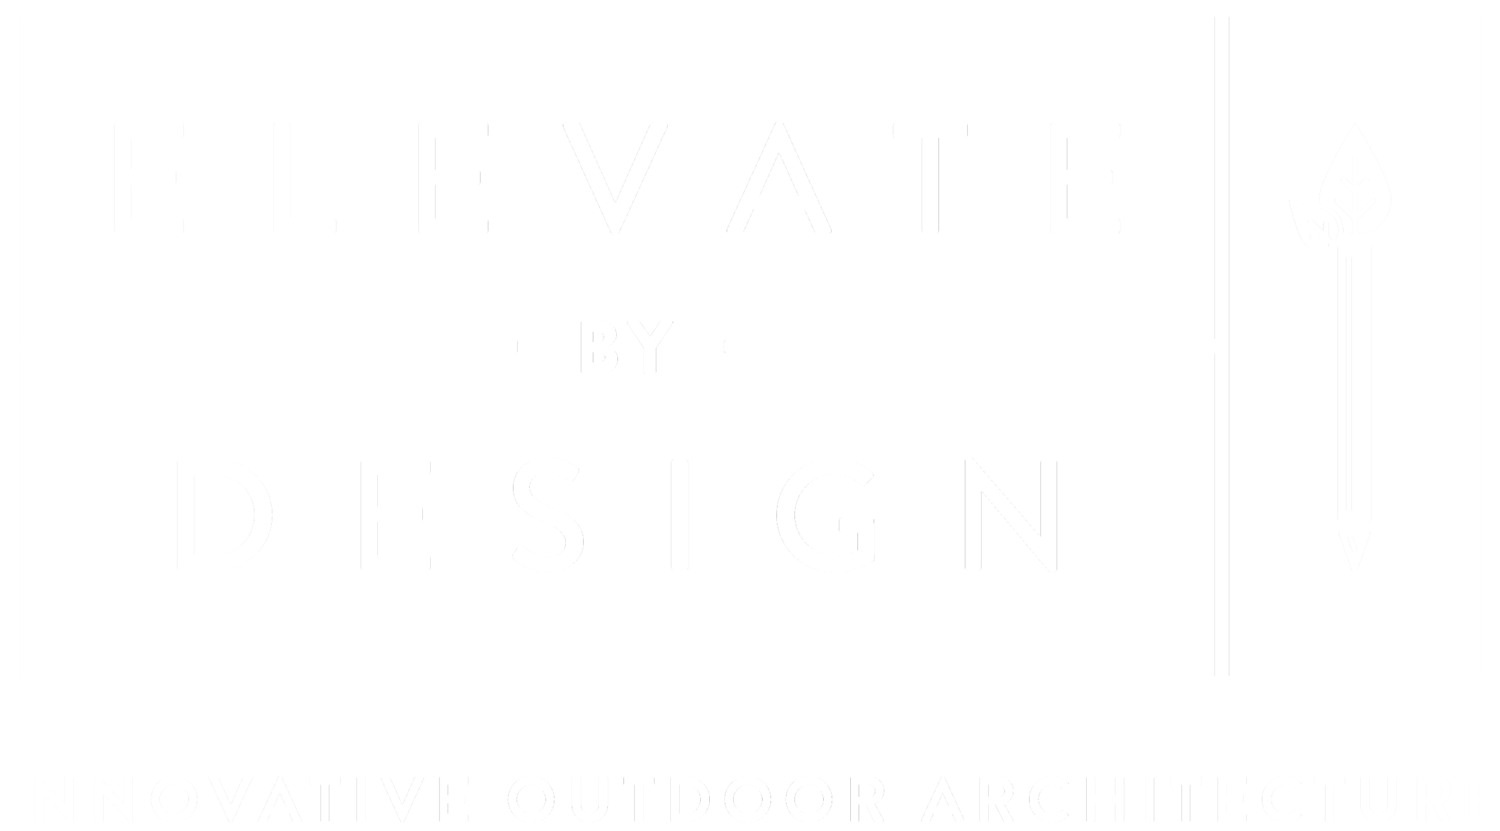 Elevate by Design: Innovative Outdoor Architecture